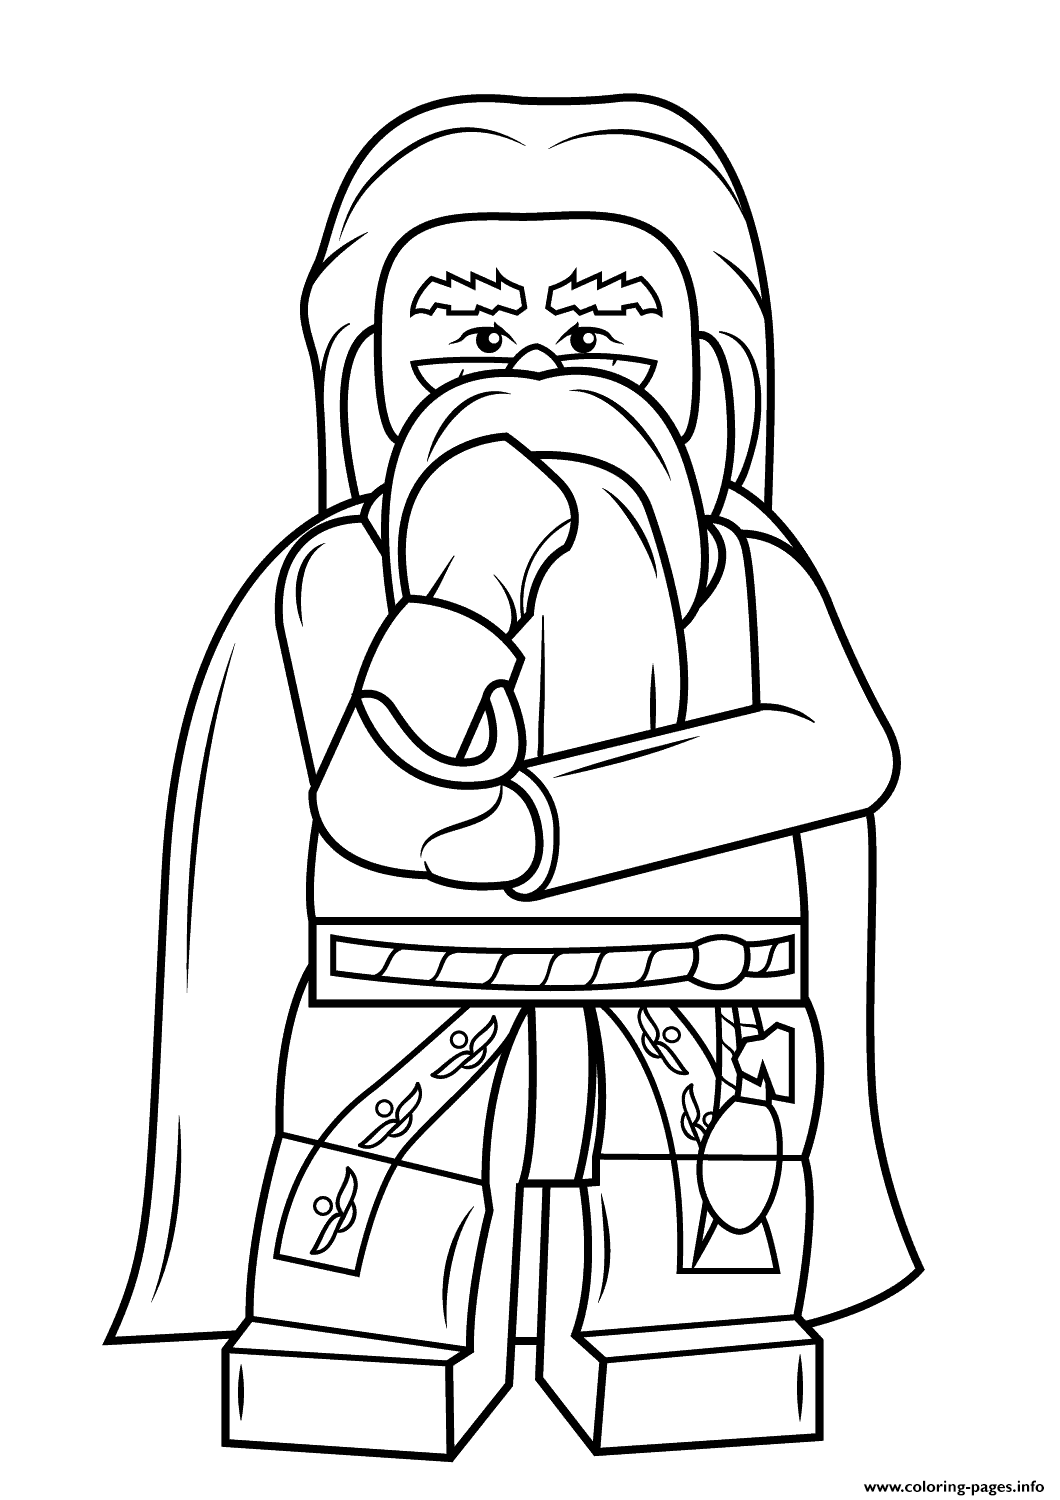 harry potter lego coloring pages harry potter wand coloring pages at getcoloringscom harry potter coloring pages lego